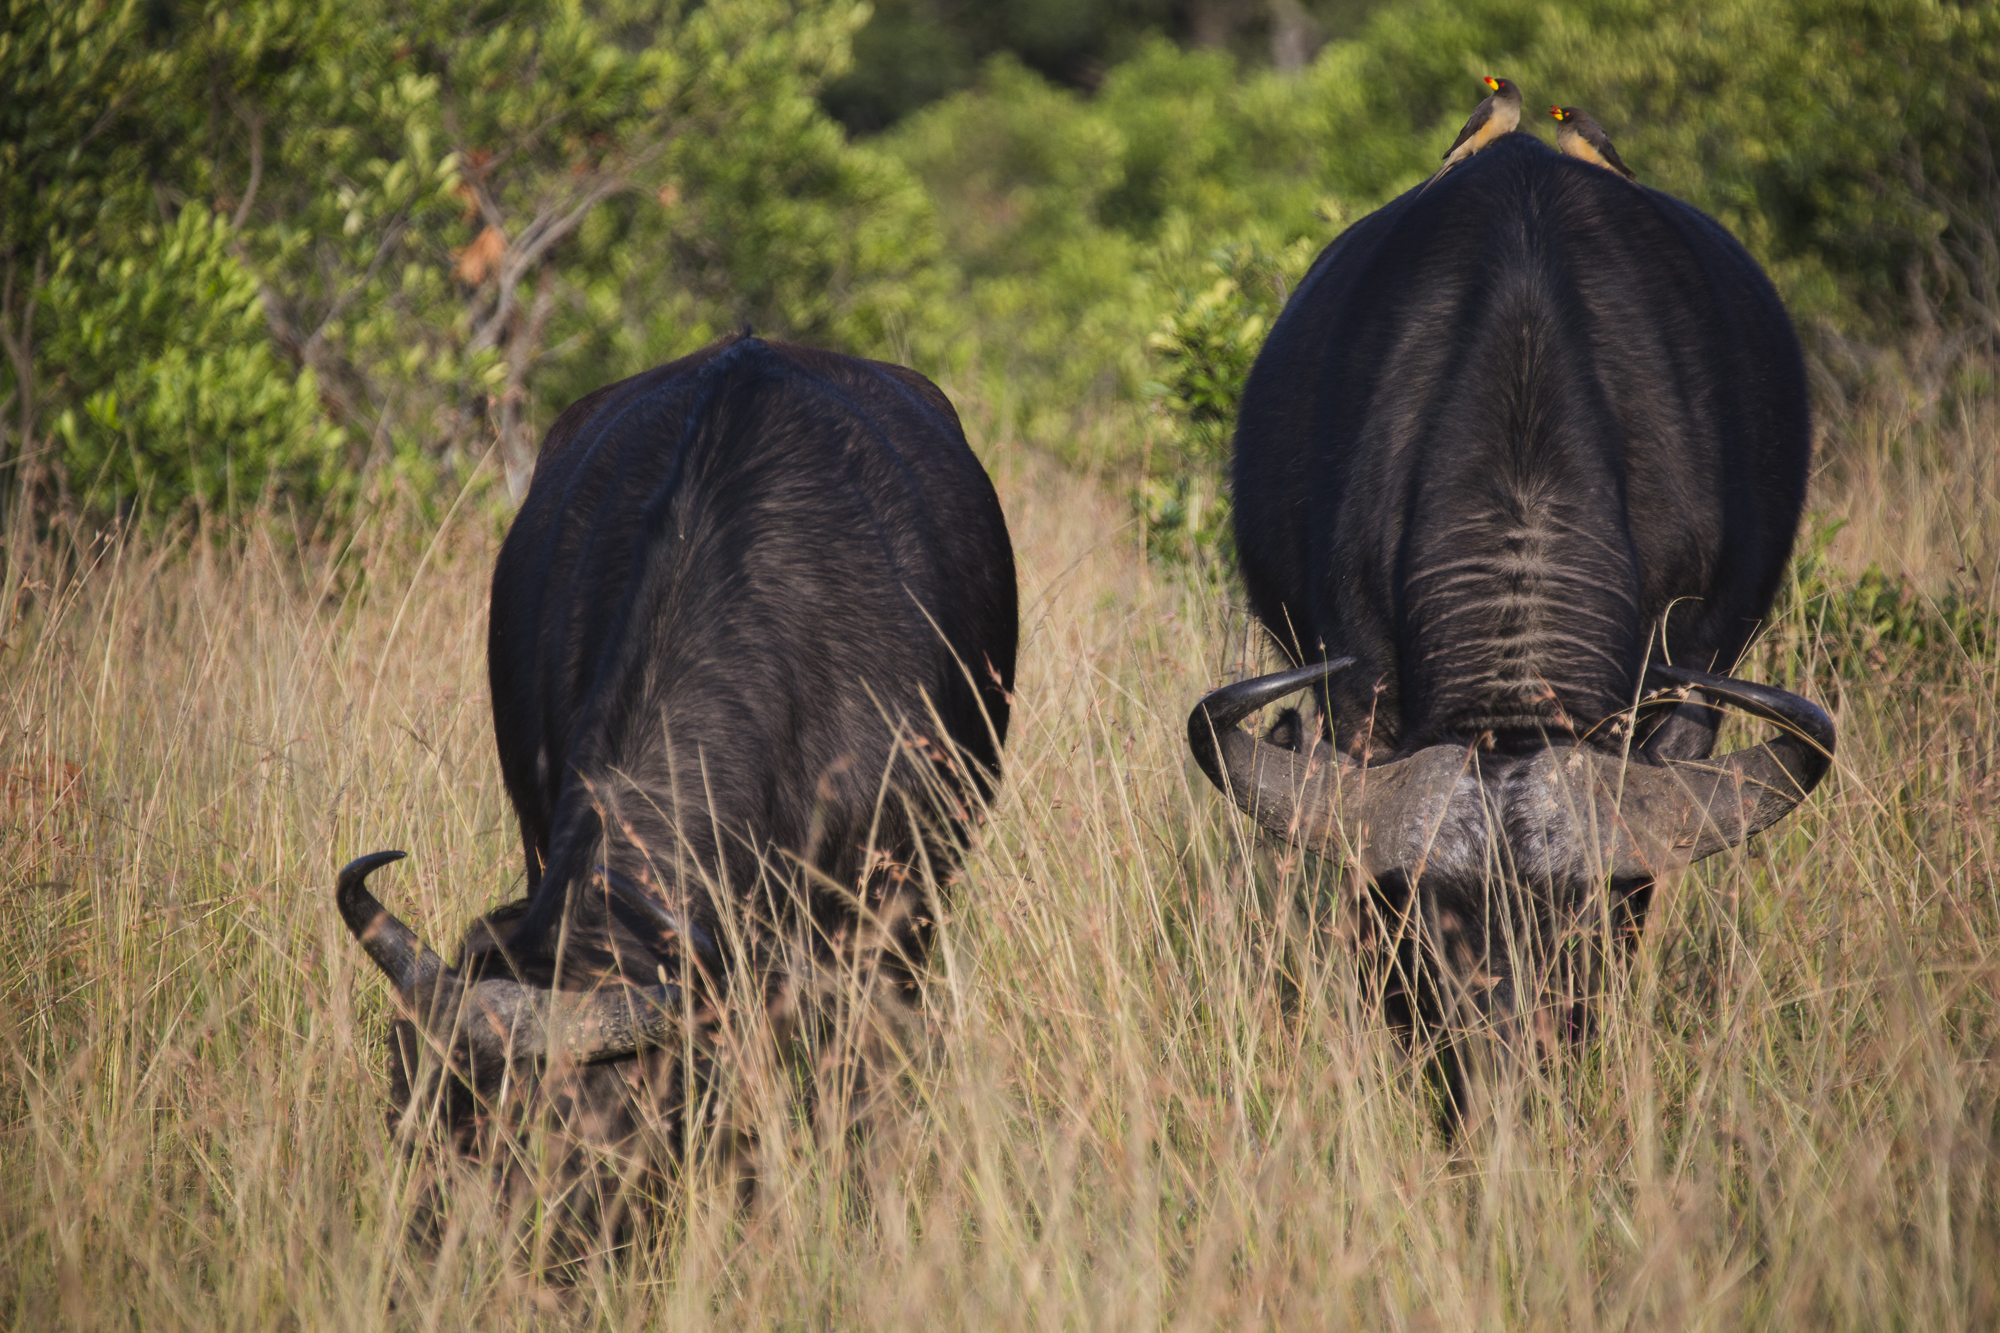 A pair of African buffalos graze while a pair of red-billed oxpeckers stand on one of them, in the Maasai Mara National Reserve, in Kenya. Red-billed oxpeckers pluck the hair from some animals to build their nests.